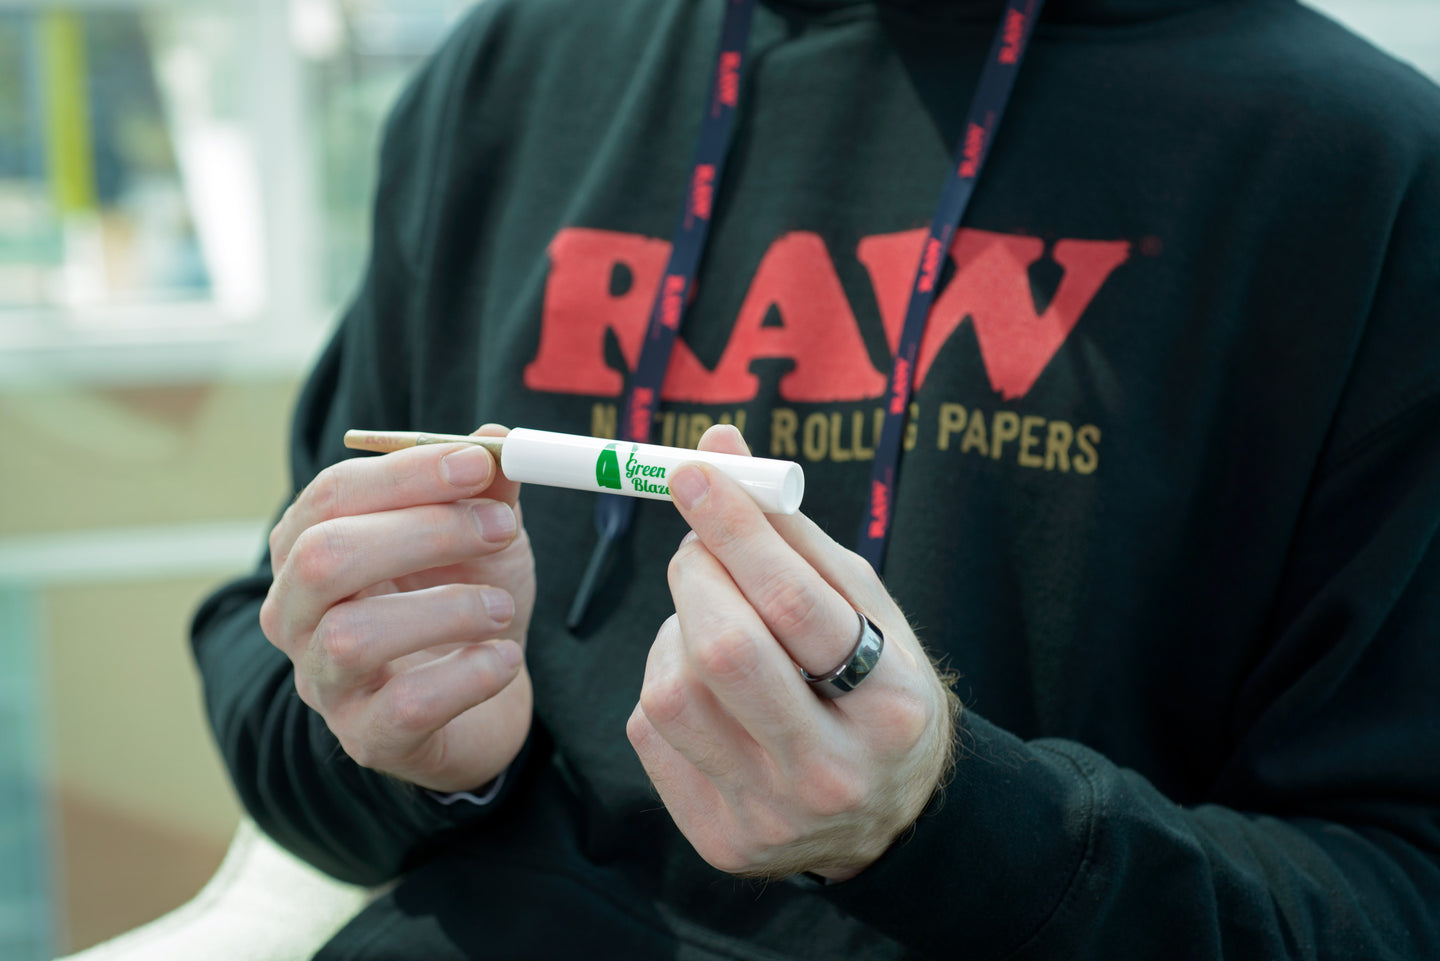 Raw cone cones cons cnes bulk big pack wholesale discount genuine vegan organic papers tips included pre-roll preroll pre roll large 98 special king size